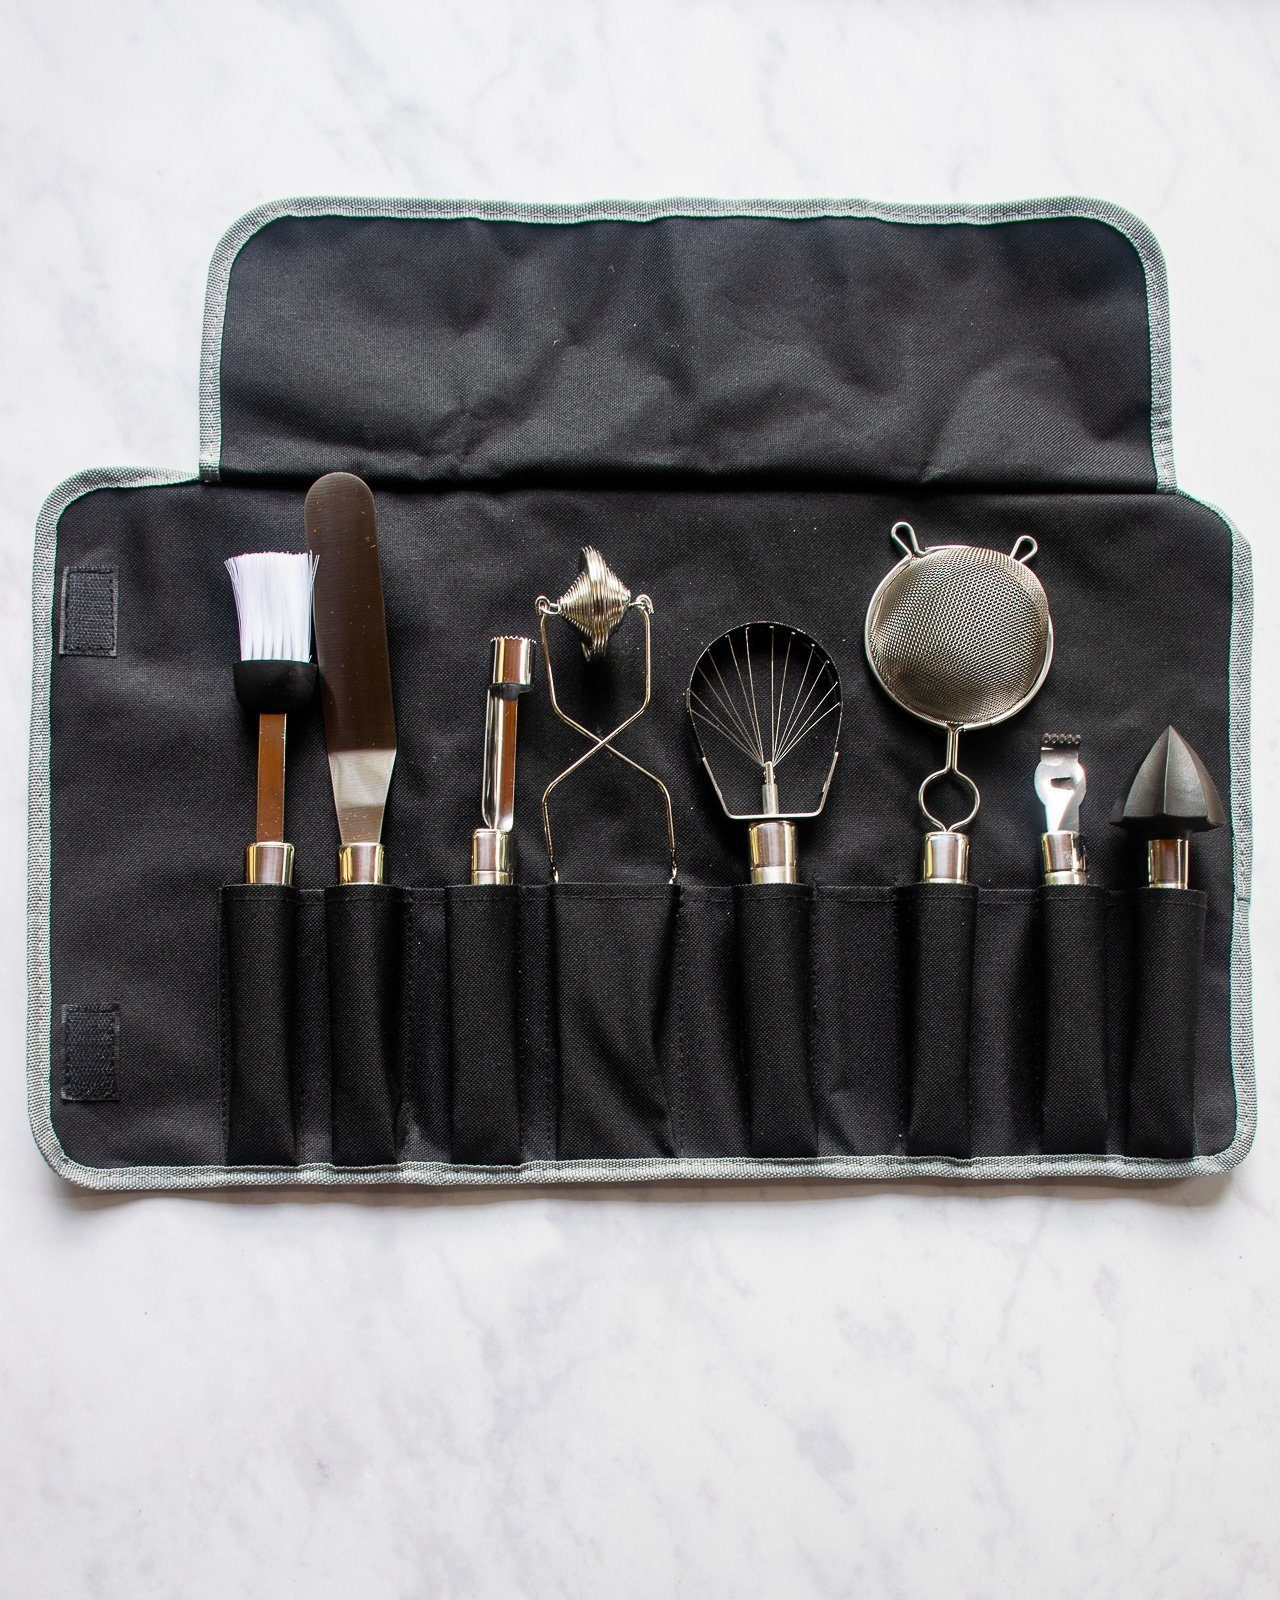 Blue Jean Chef® 8-piece Gadget and Tool Set